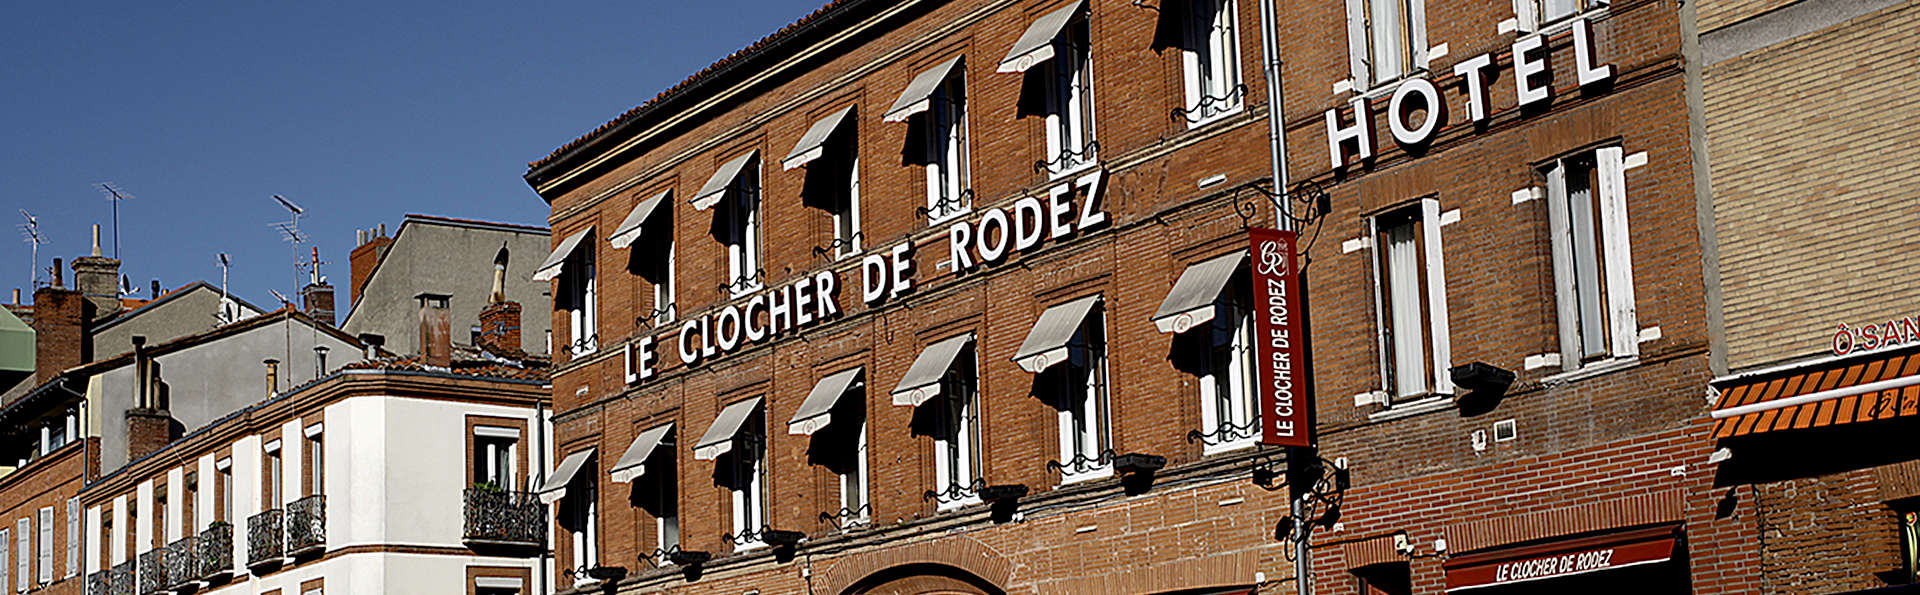 Le Clocher de Rodez - Edit_Front.jpg